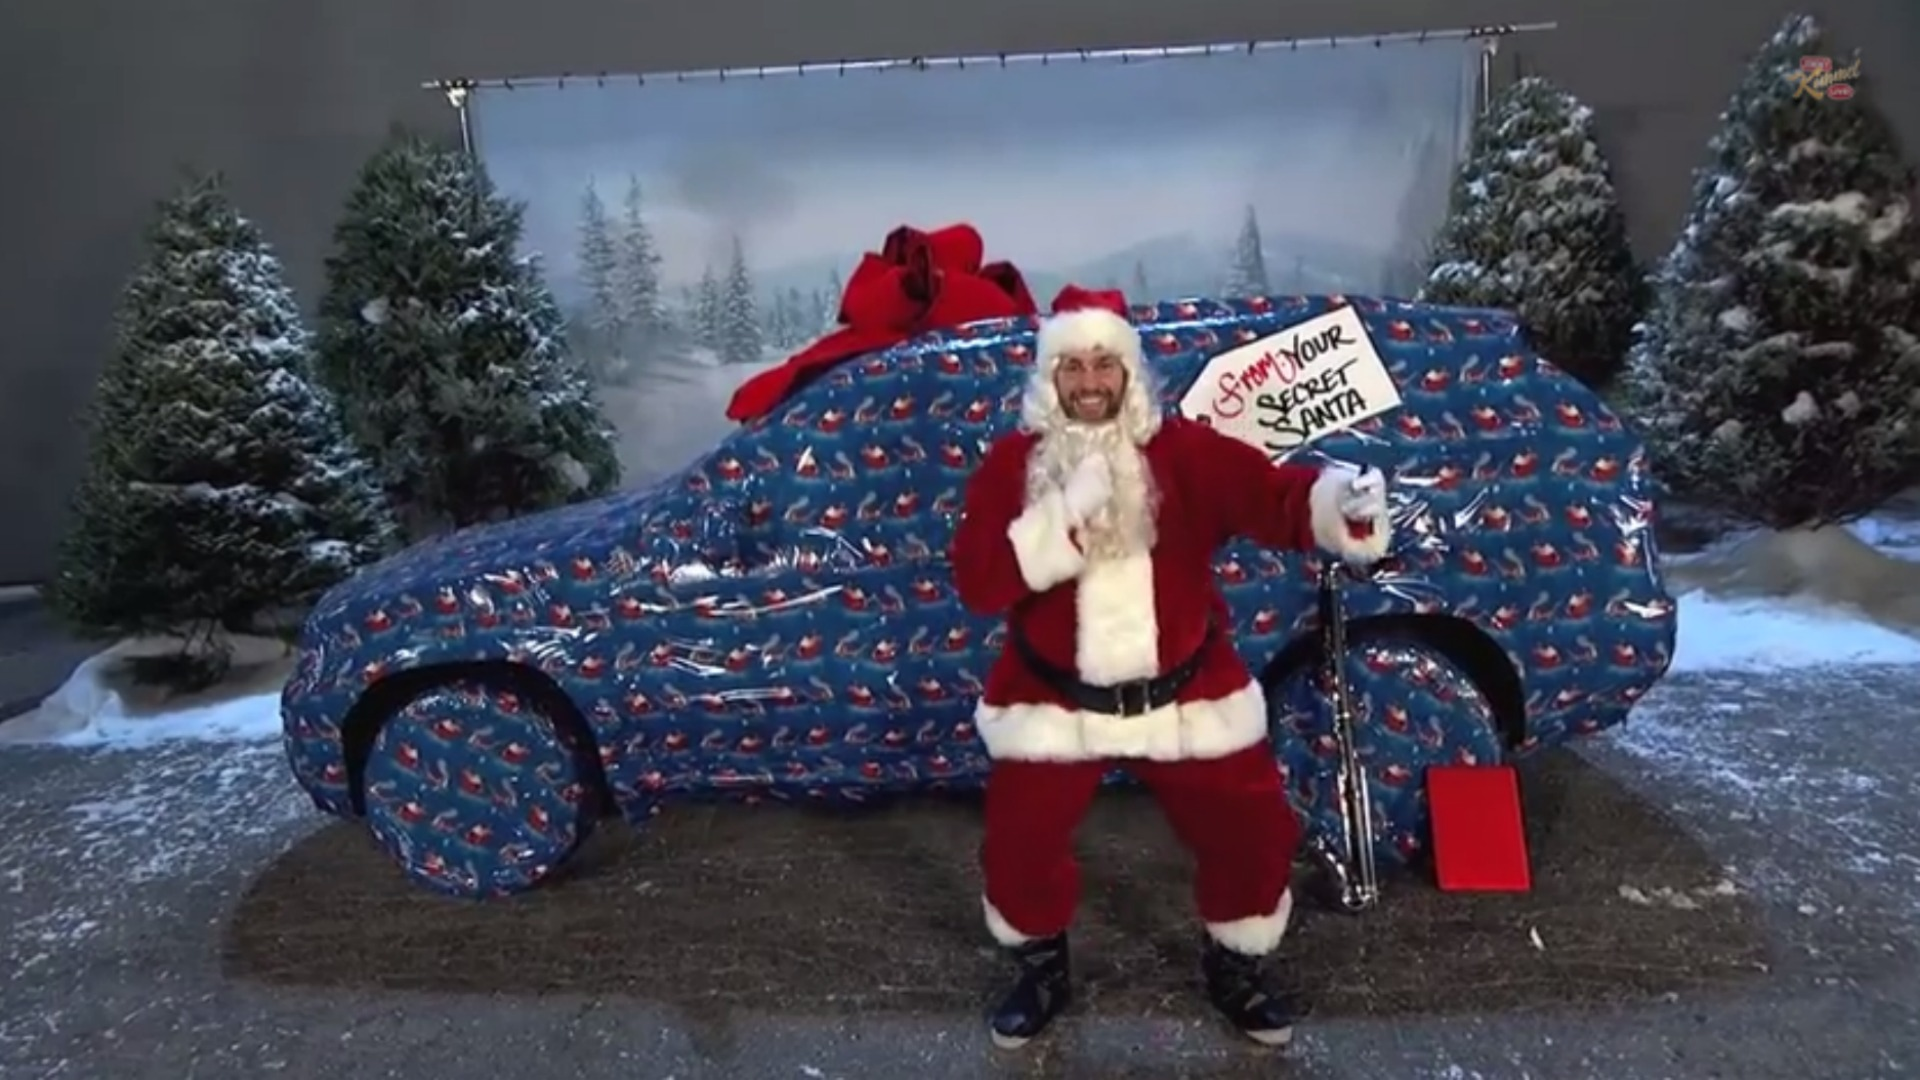 Jimmy Kimmel and John Krasinski holiday tradition pranks